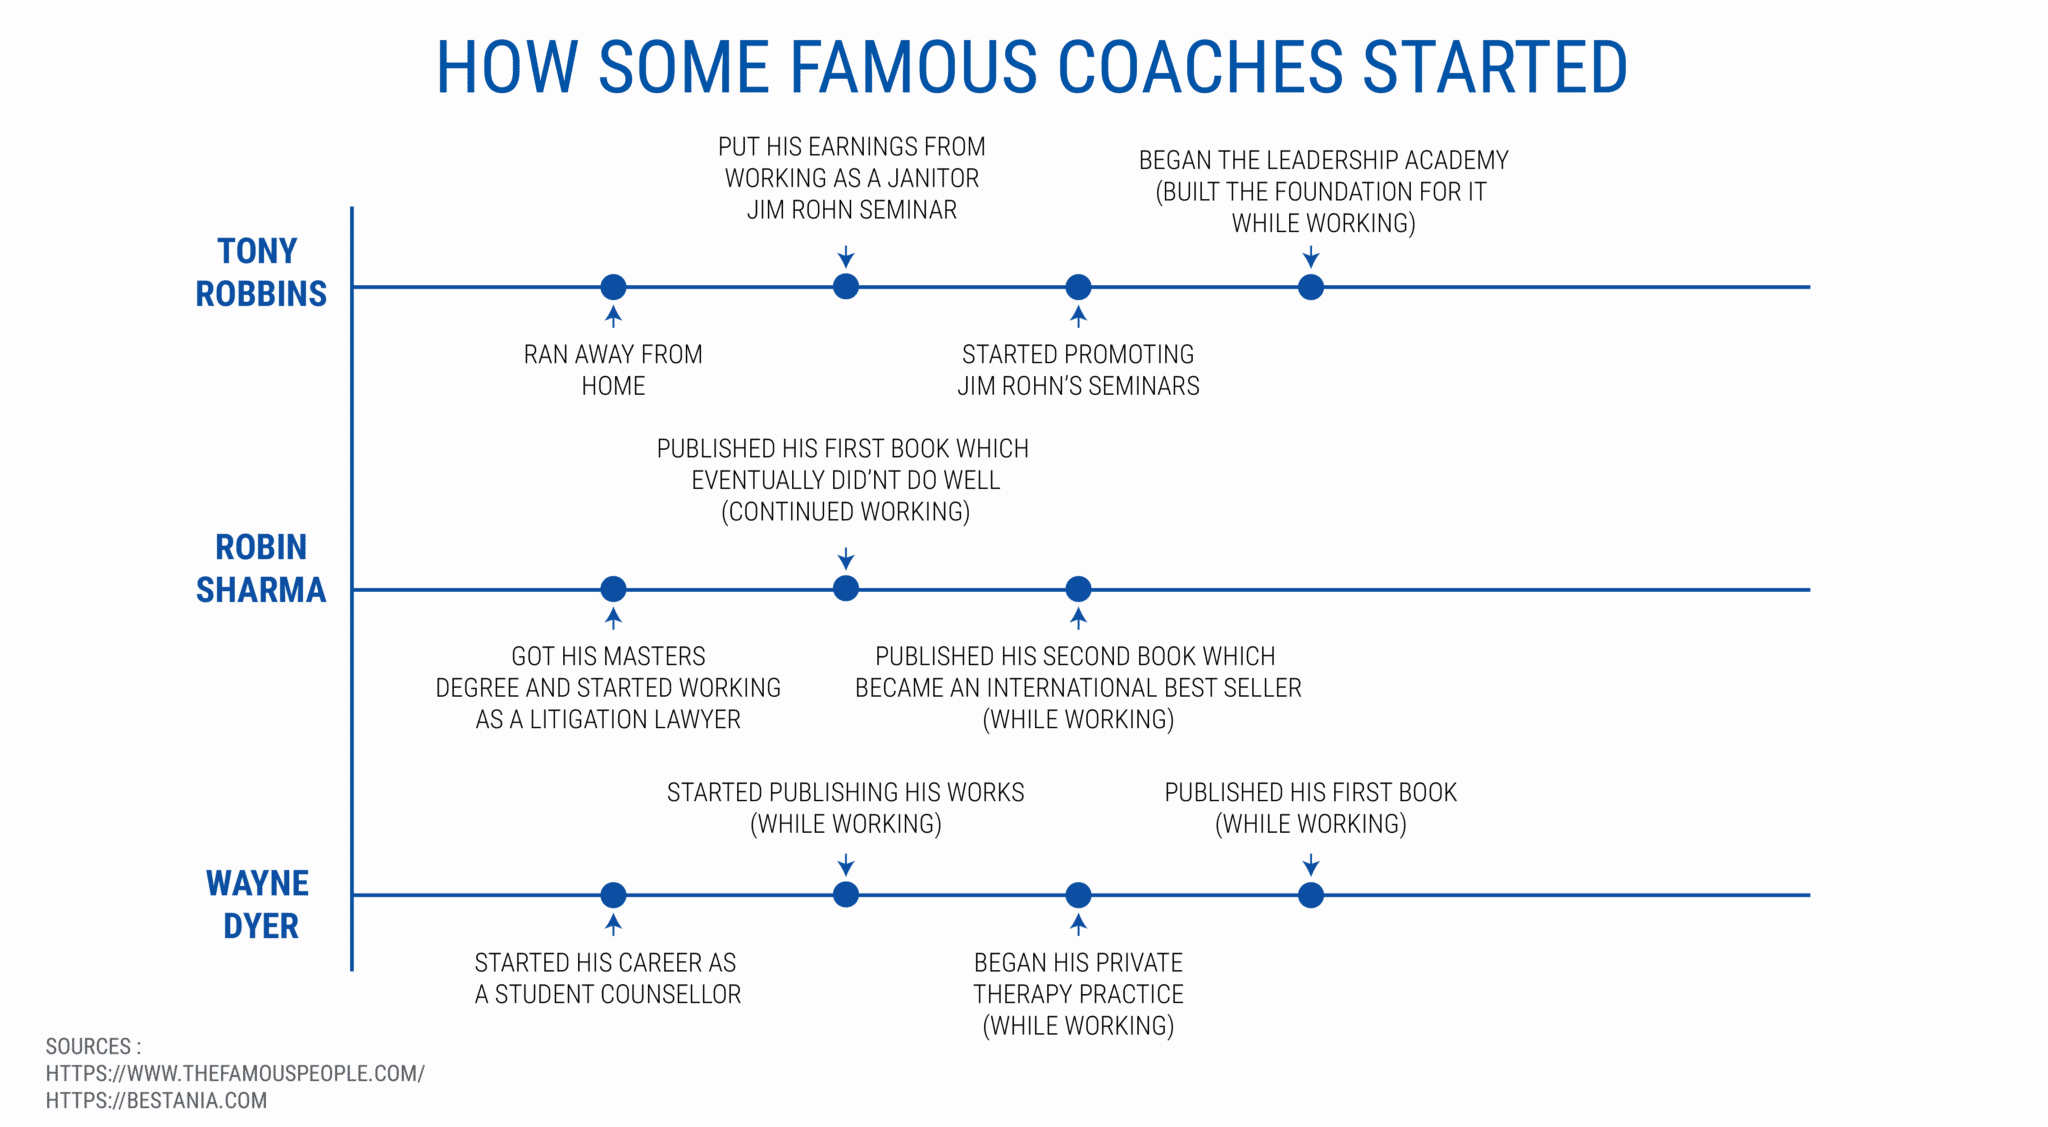 how some famous coaches started - starting a coaching business while working full-time